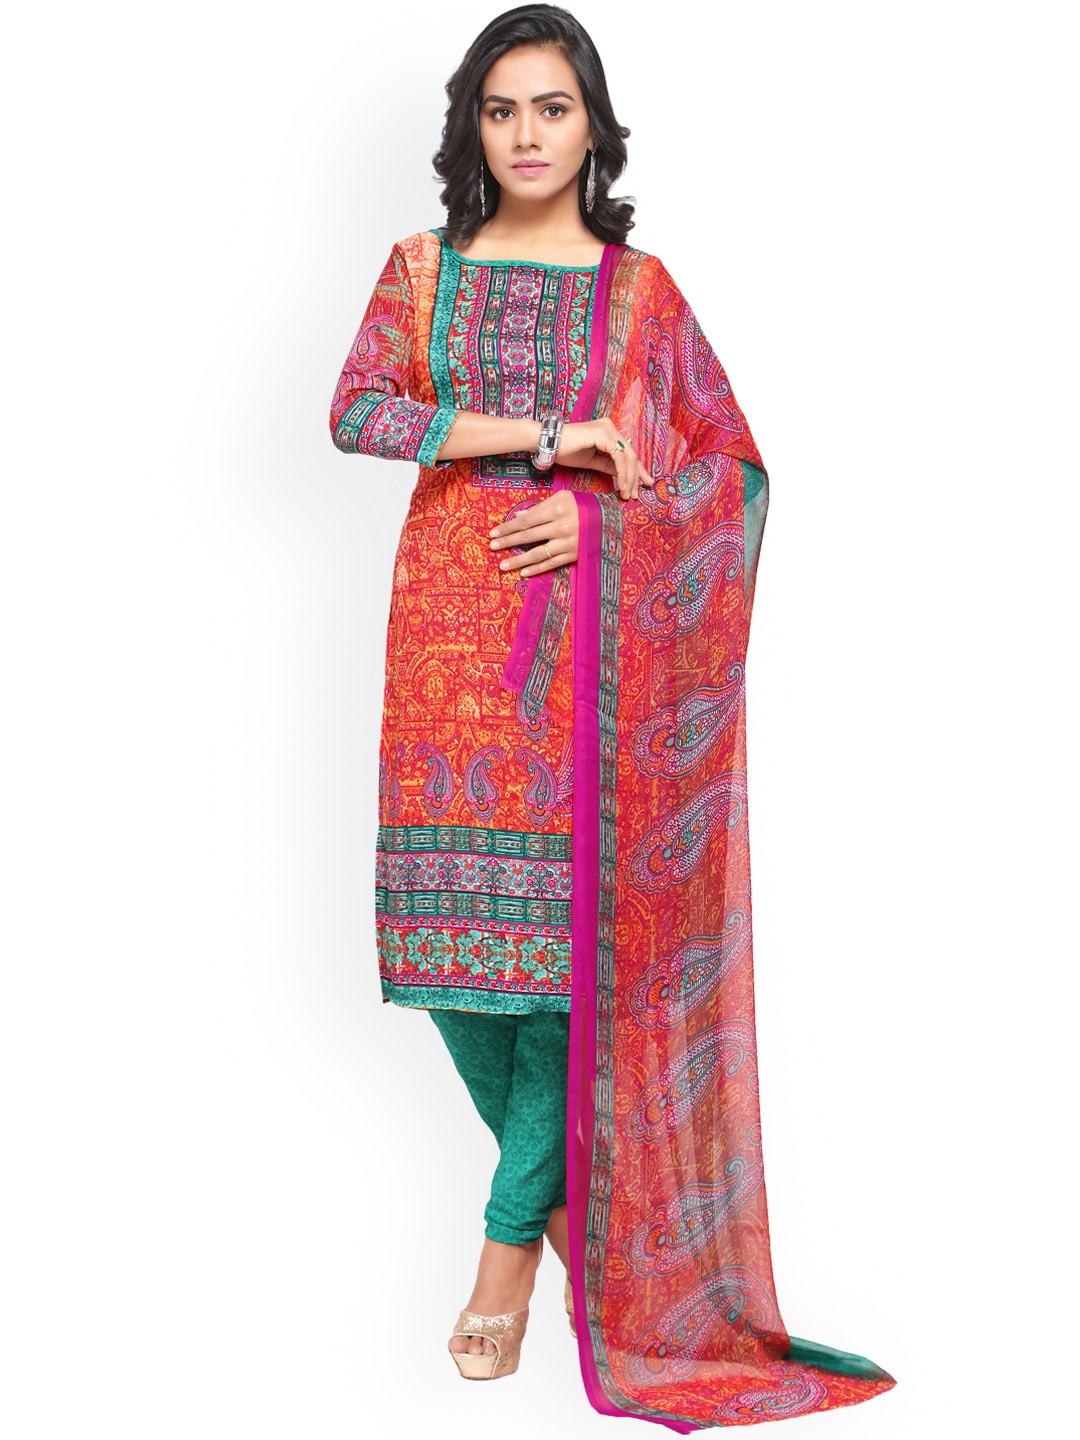 Satrani Multicoloured Poly Crepe Unstitched Dress Material image